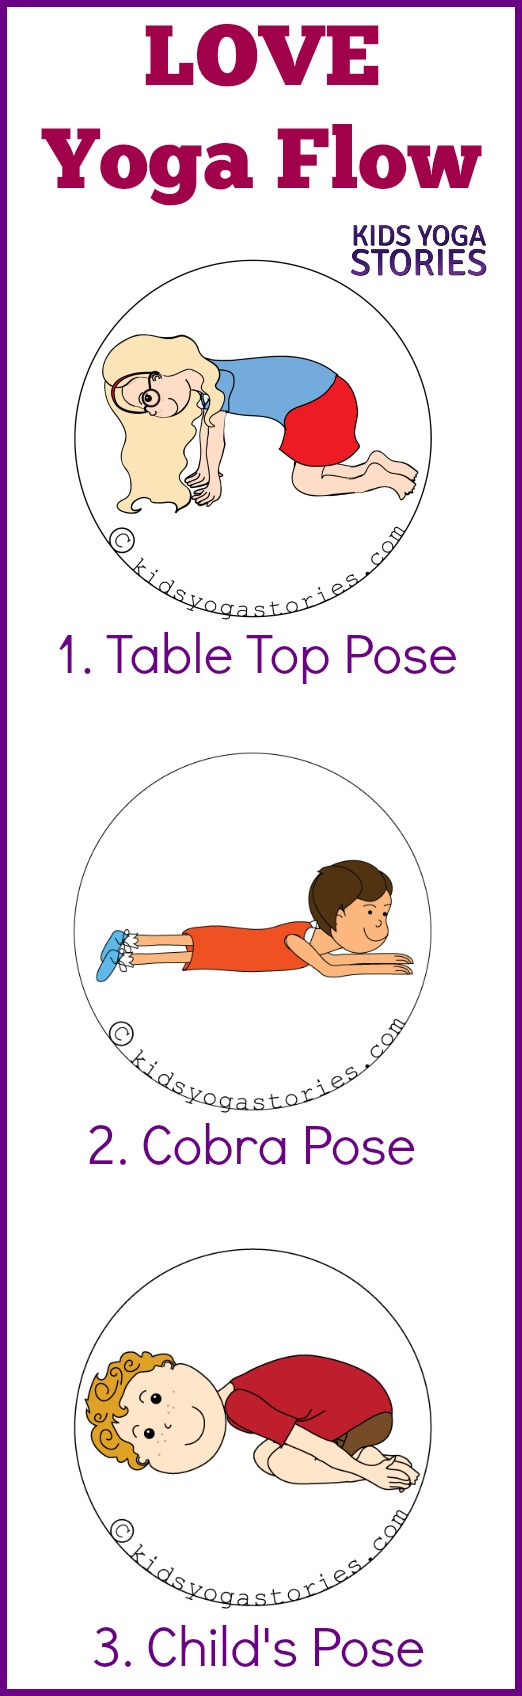 """Three yoga poses to create a """"Love-themed"""" yoga flow sequence for Valentine's Day 